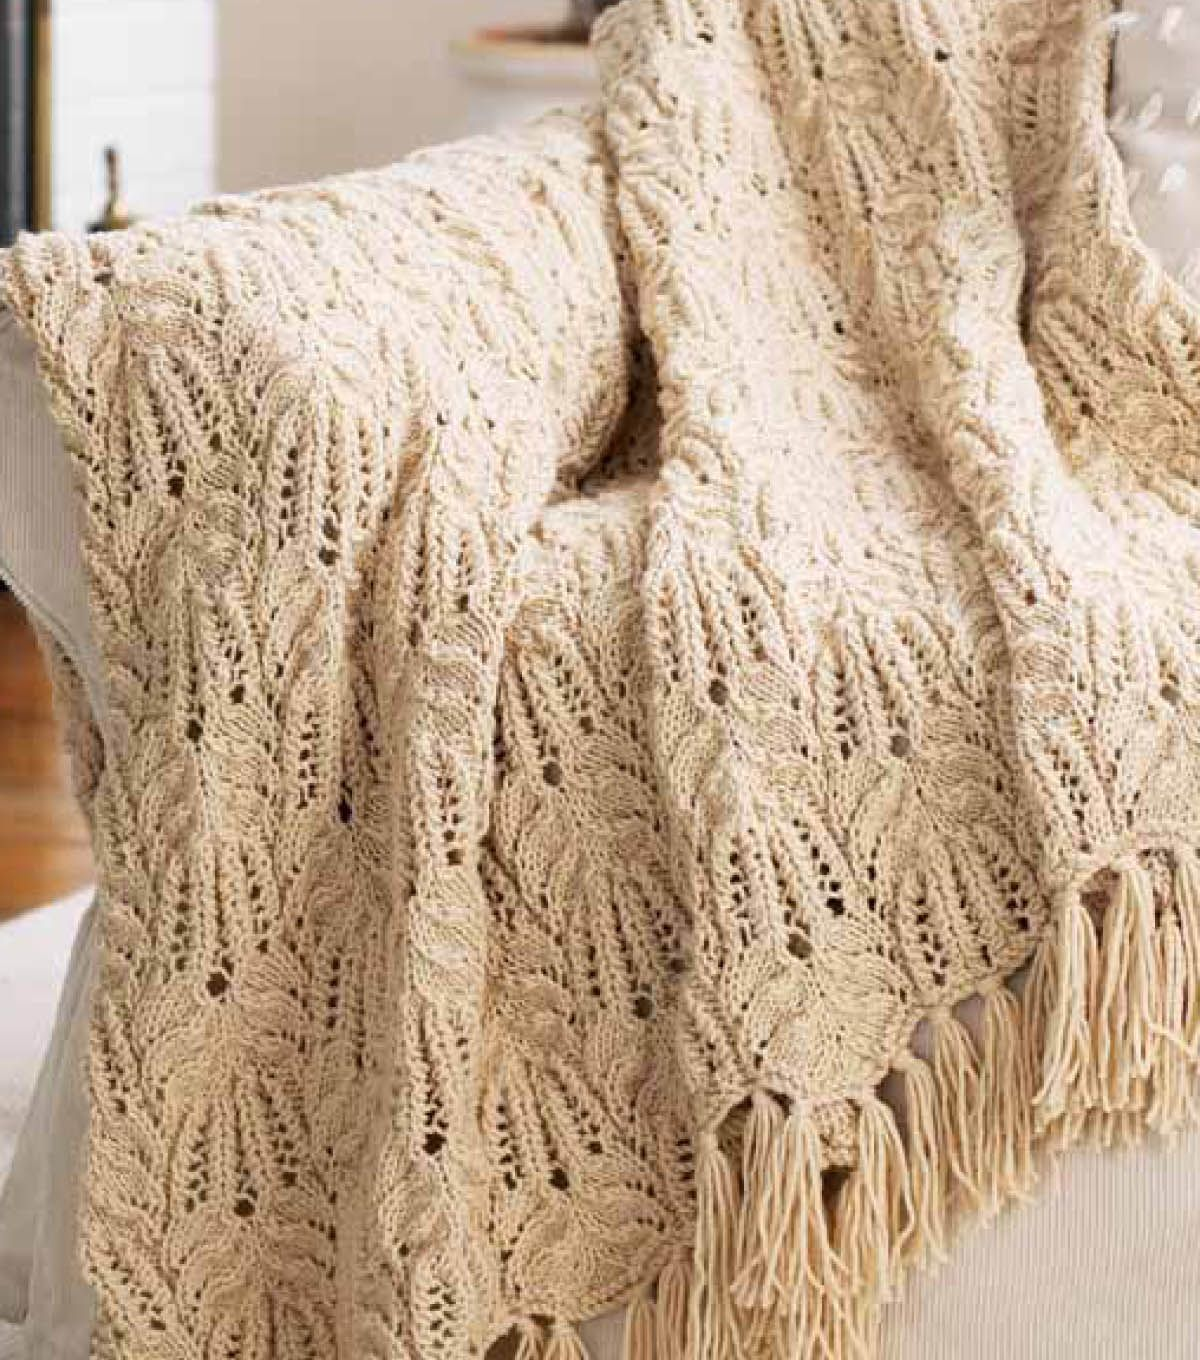 Free knitting pattern lace and cable afghan afghans knitting free knitting pattern lace and cable afghan bankloansurffo Image collections